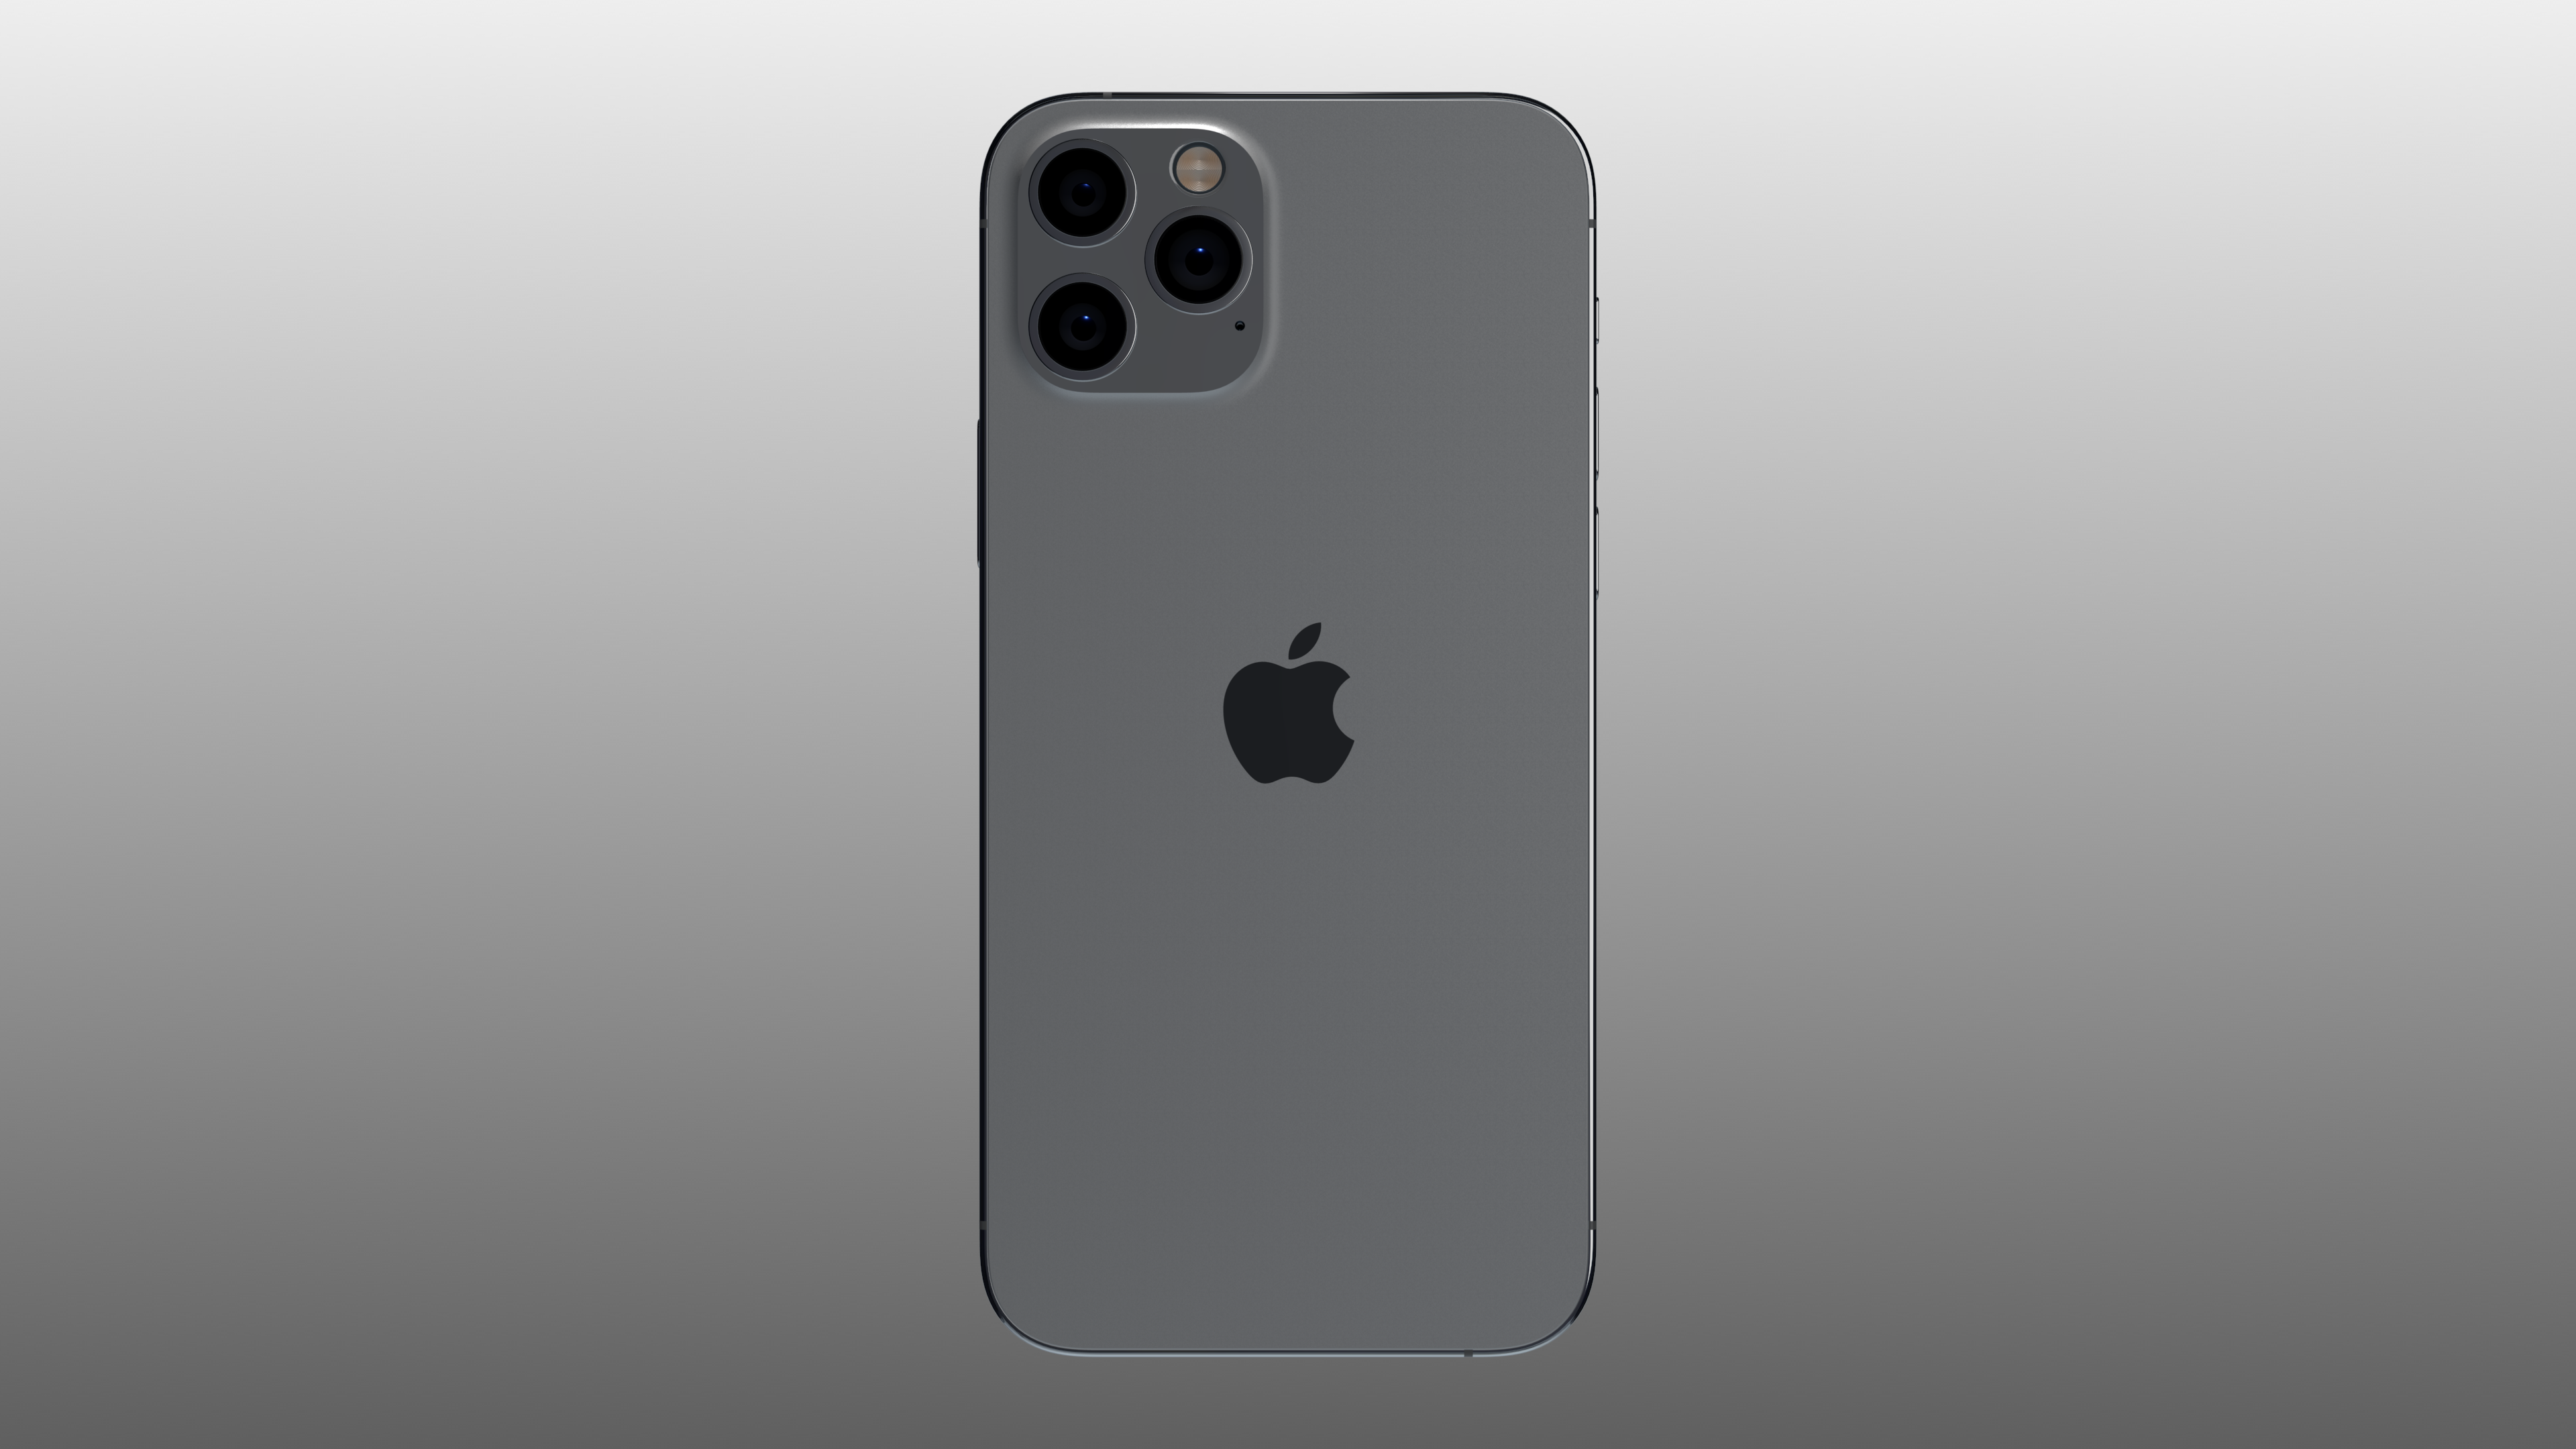 Back of iPhone 12 Pro mockup on a gradient background